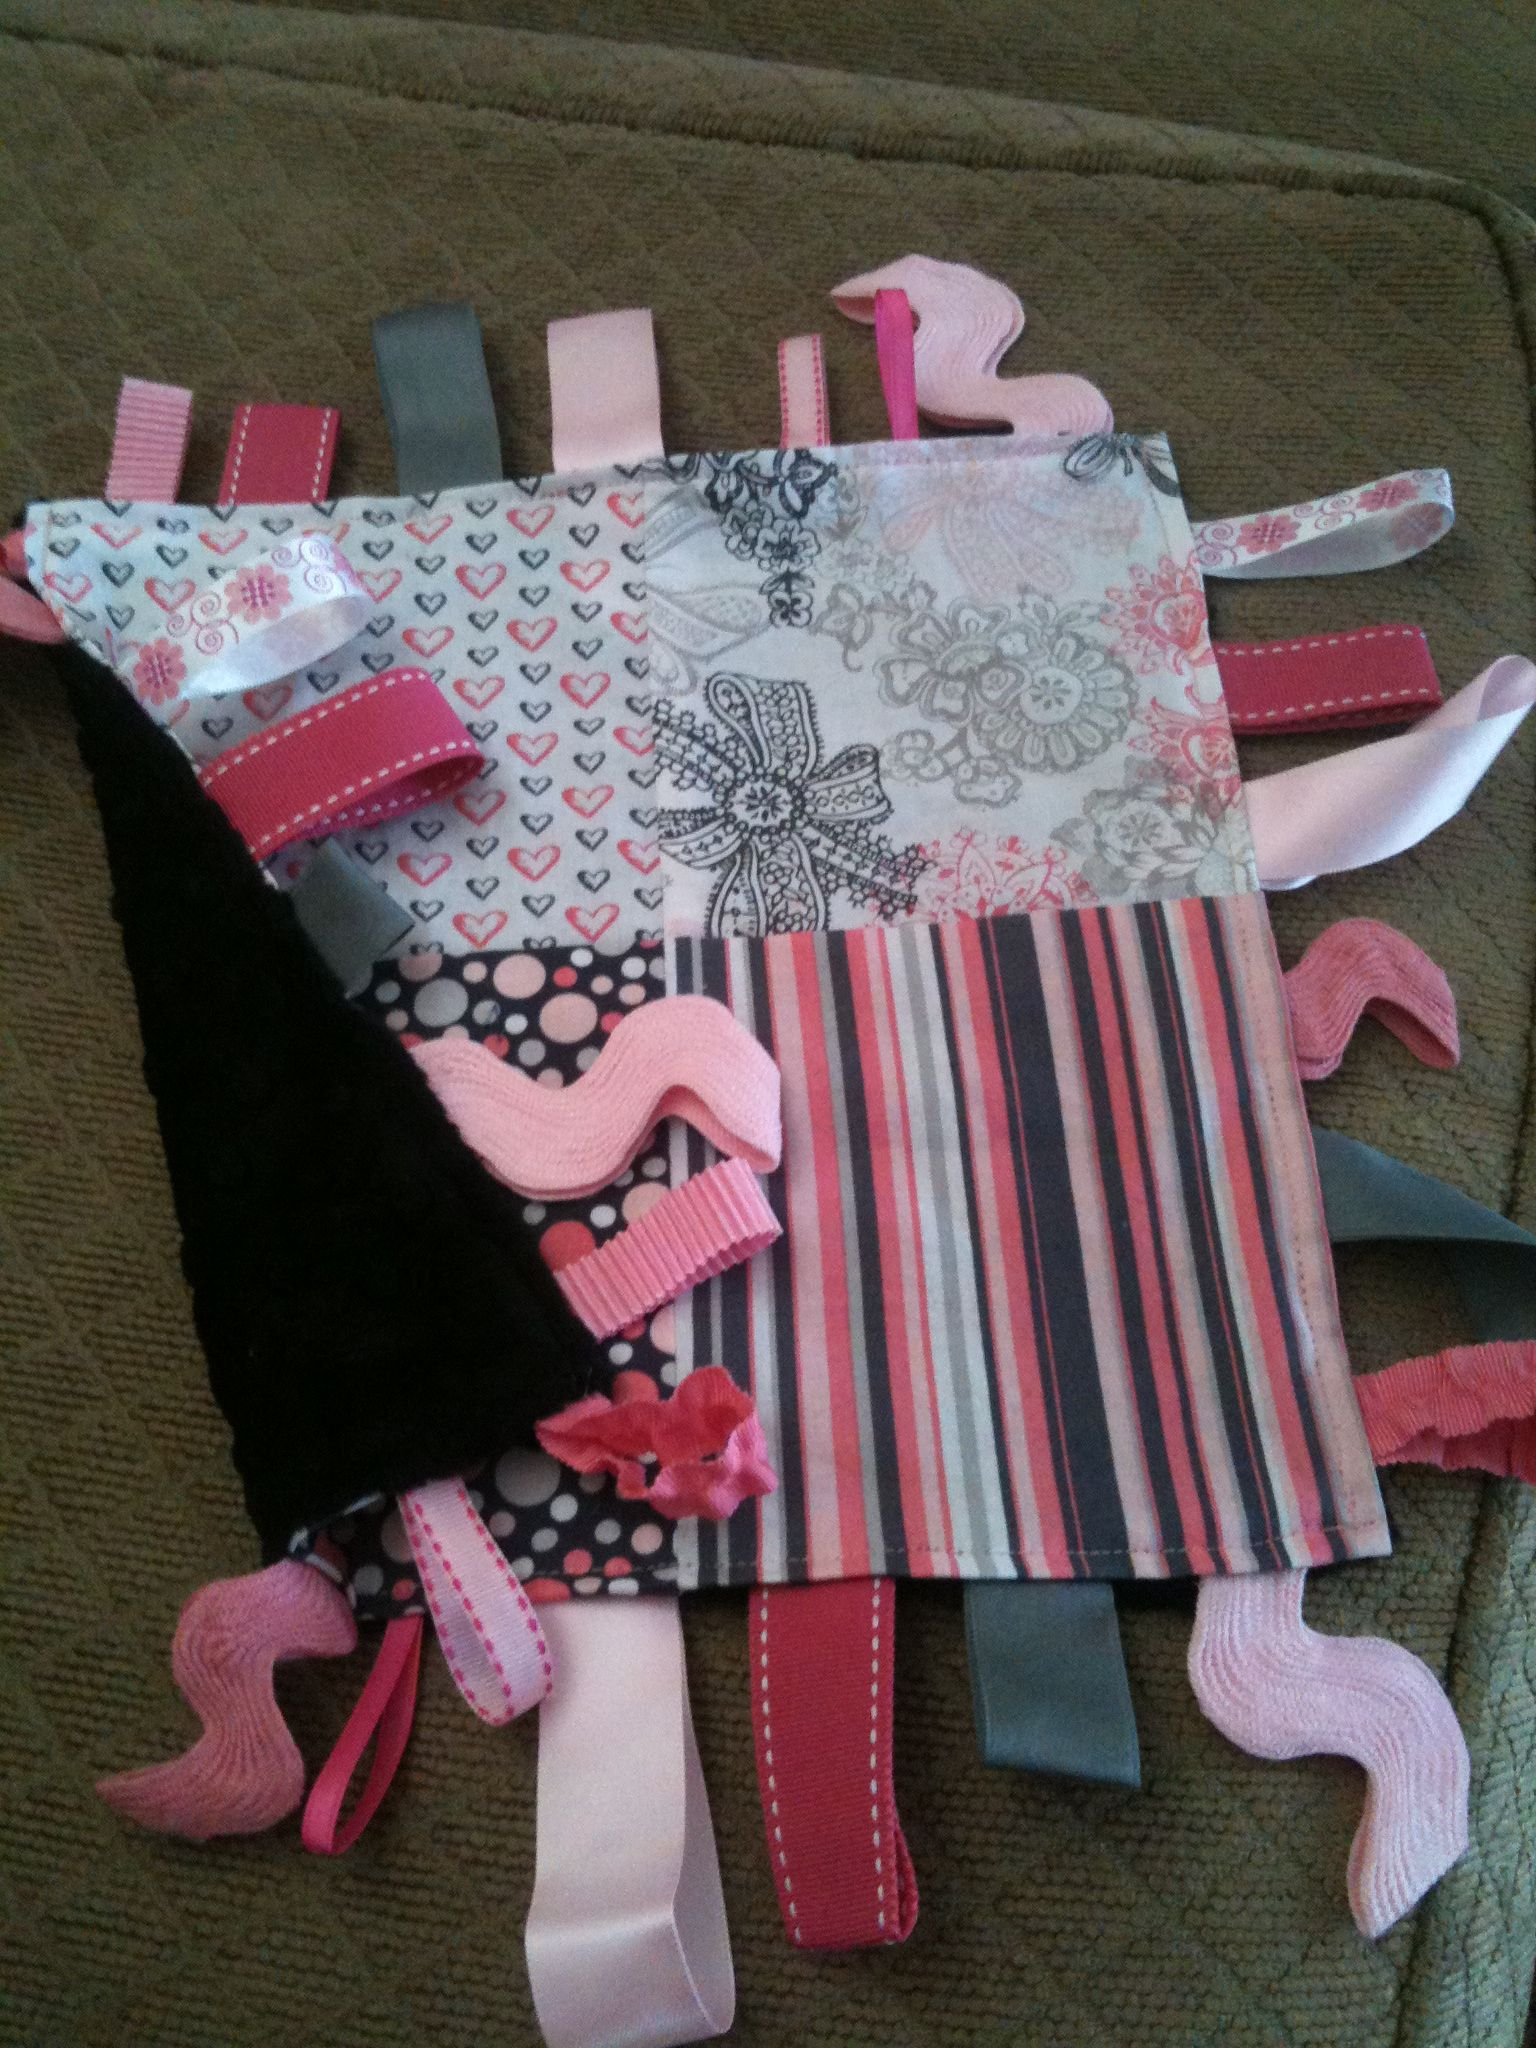 First attempt at a tag blanket for my little princess!! It matches all her homemade bedding as well!